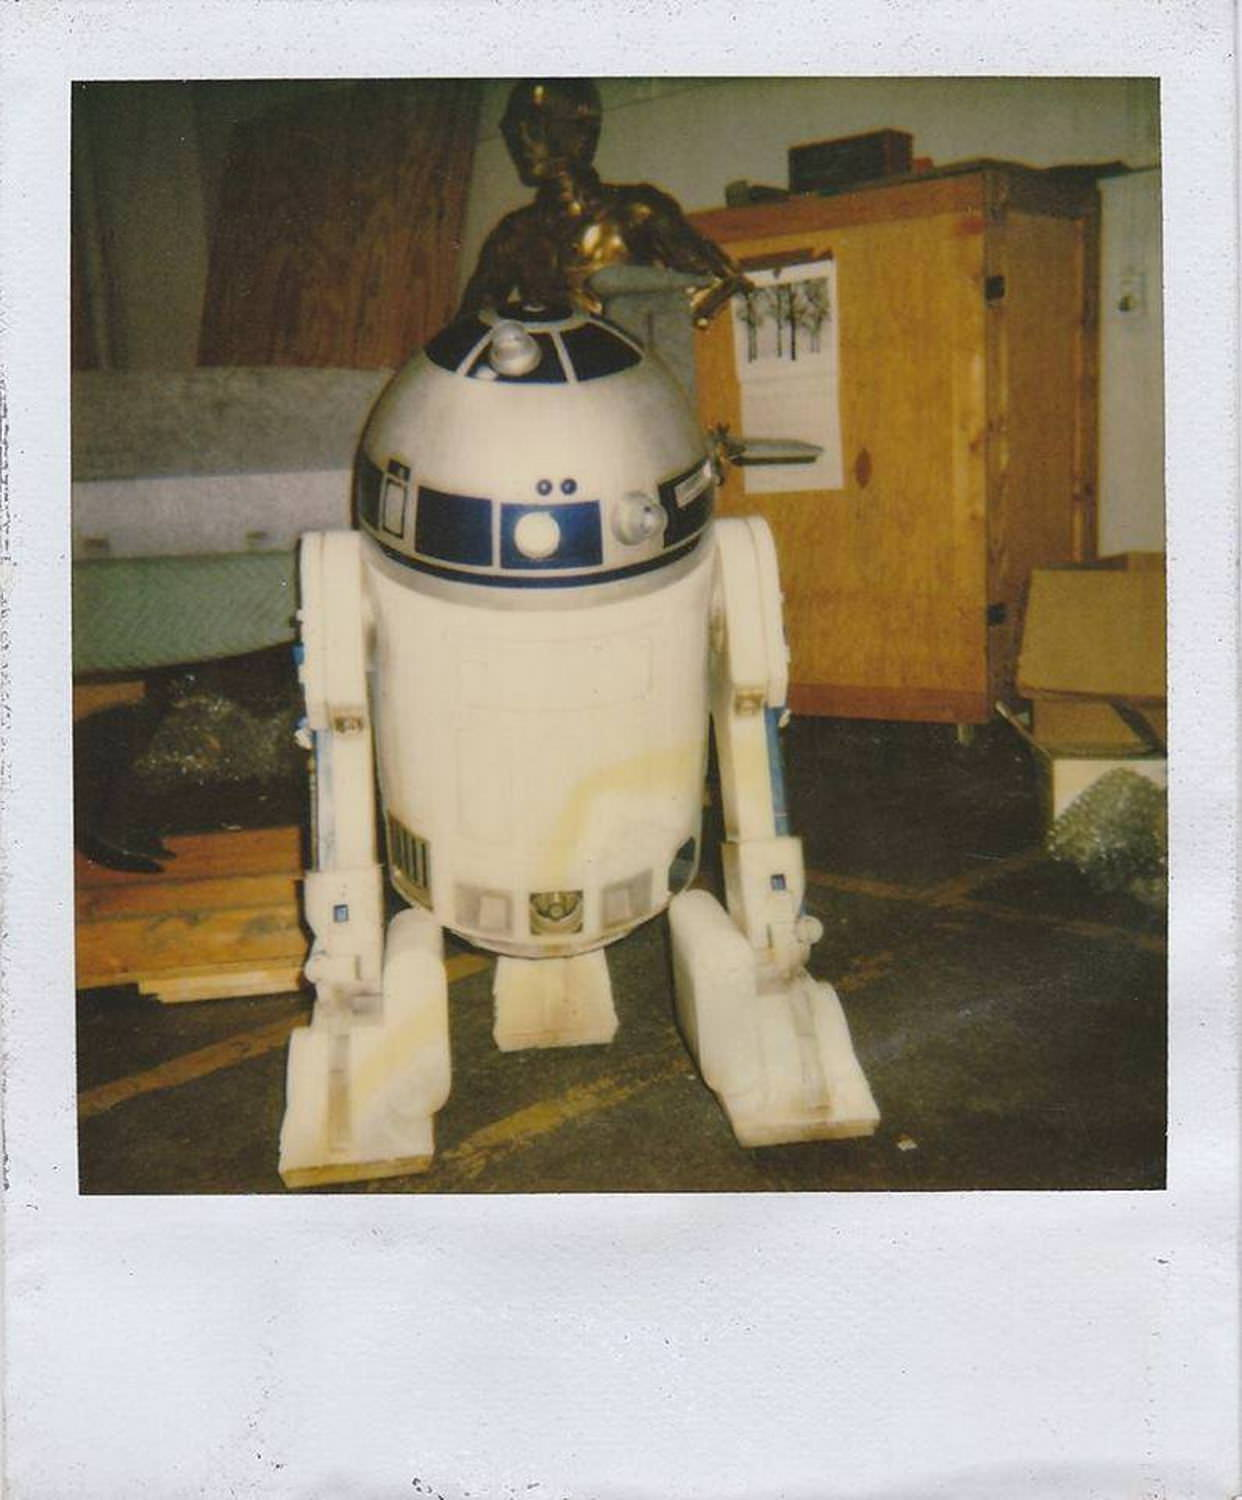 R2-D2 and C-3PO in storage